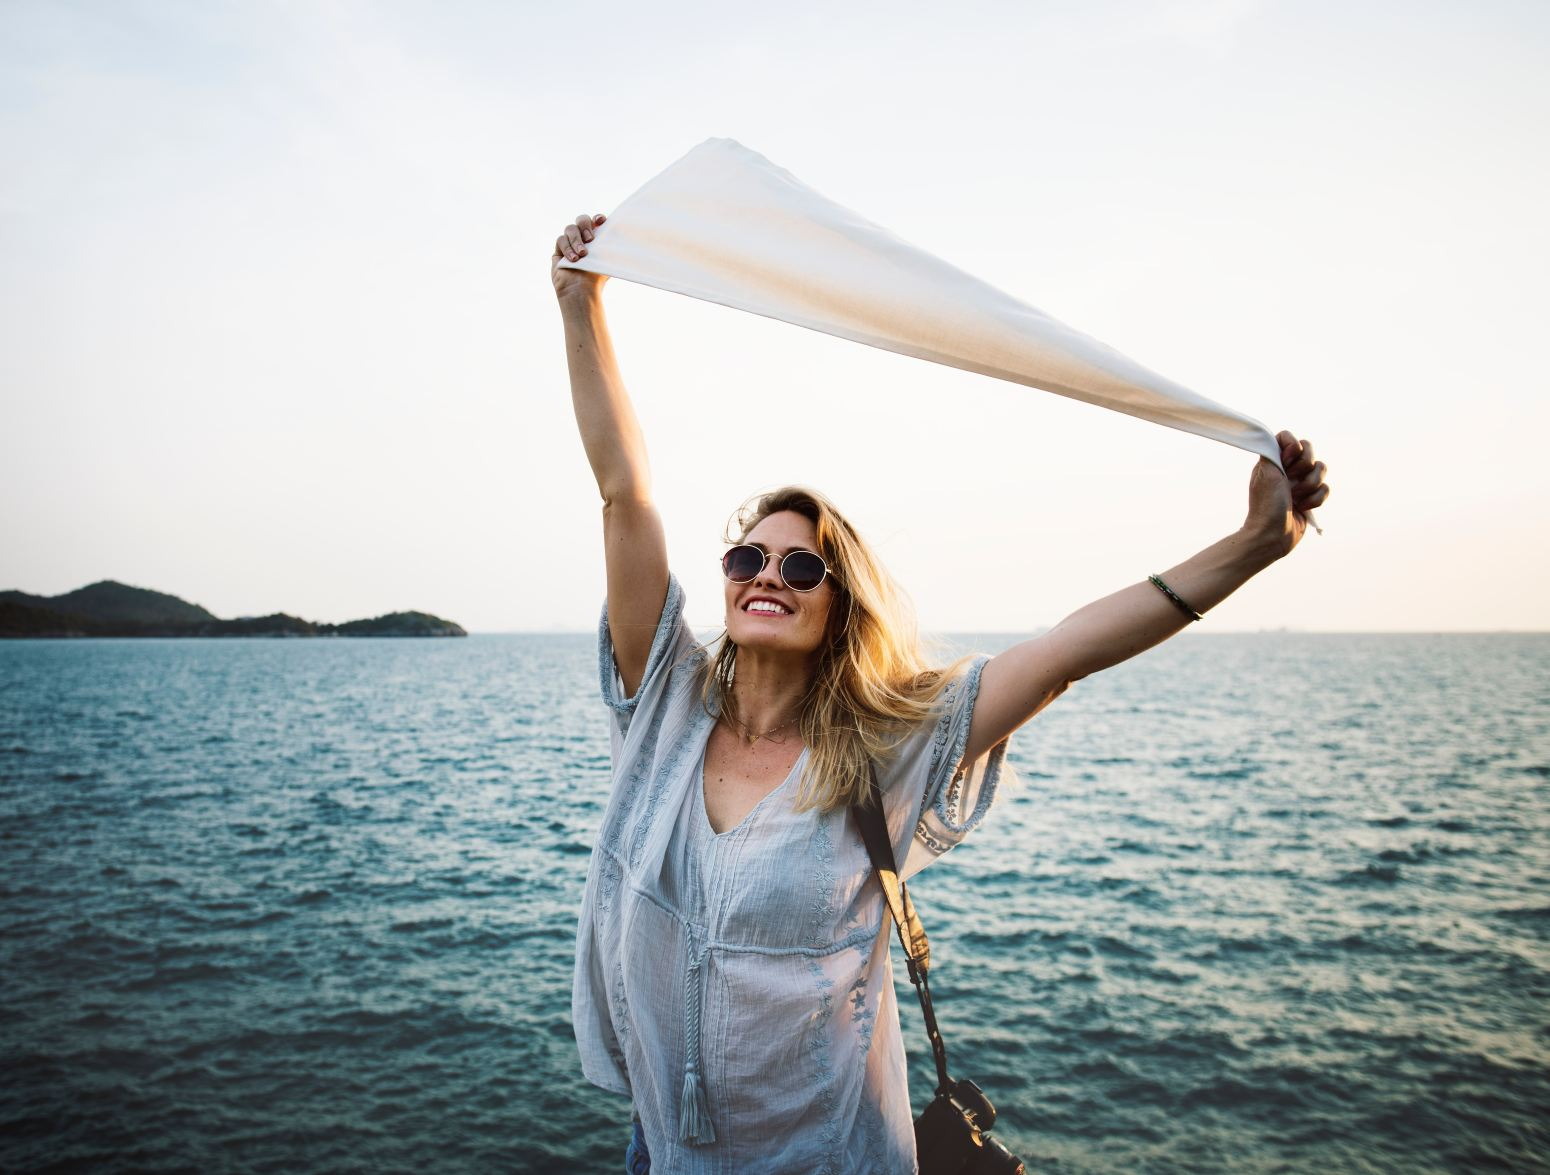 How to Become the Best Version of Yourself by Raising Your Vibration